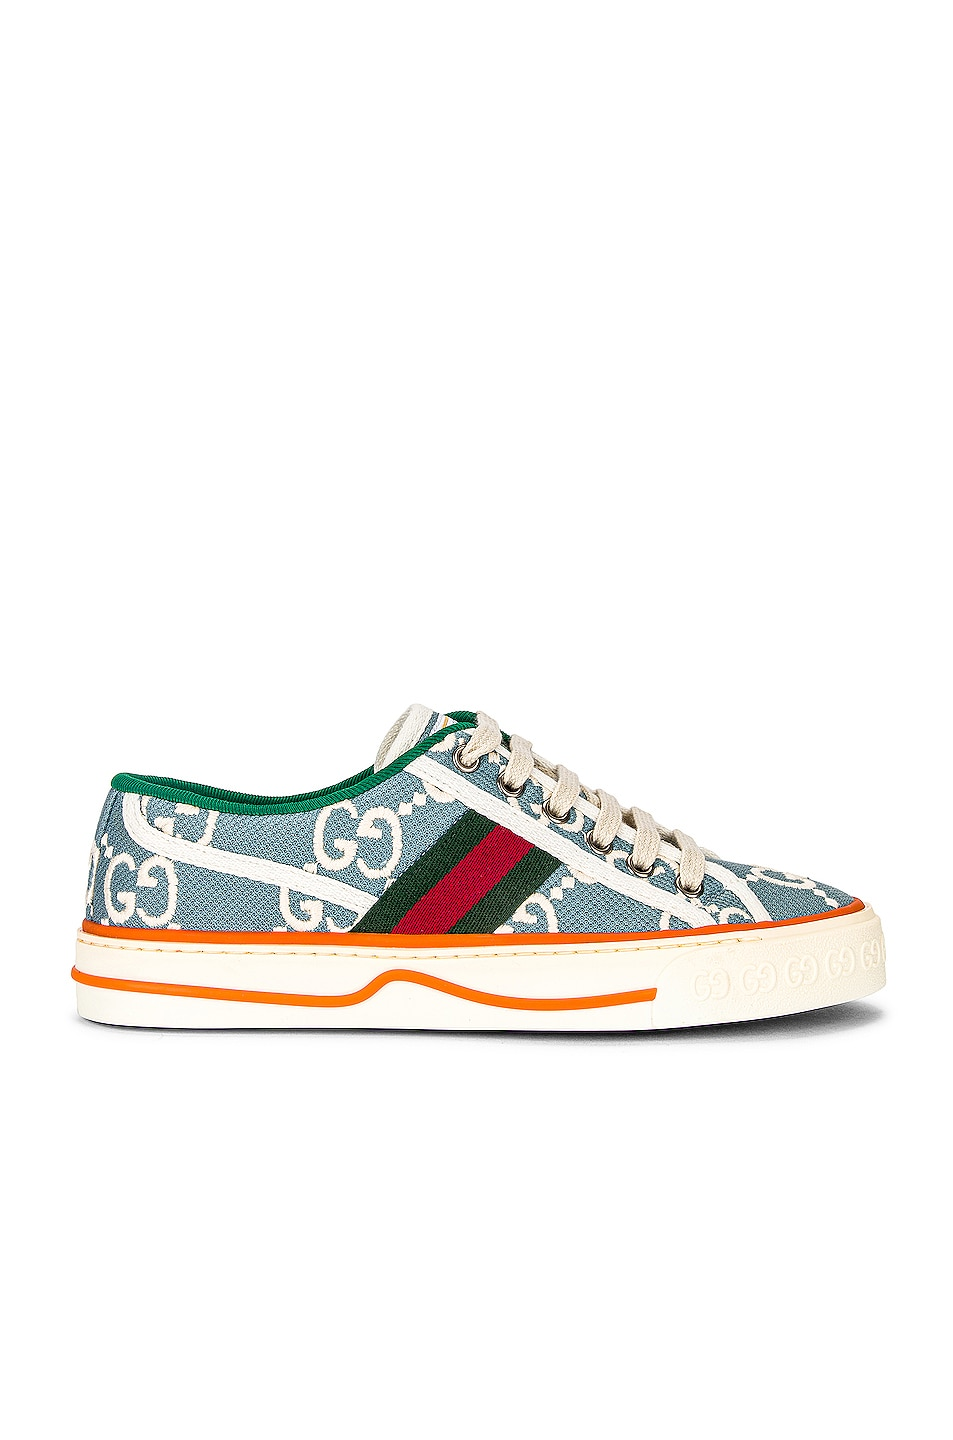 Image 1 of Gucci Tennis 1977 GG Sneakers in Blue